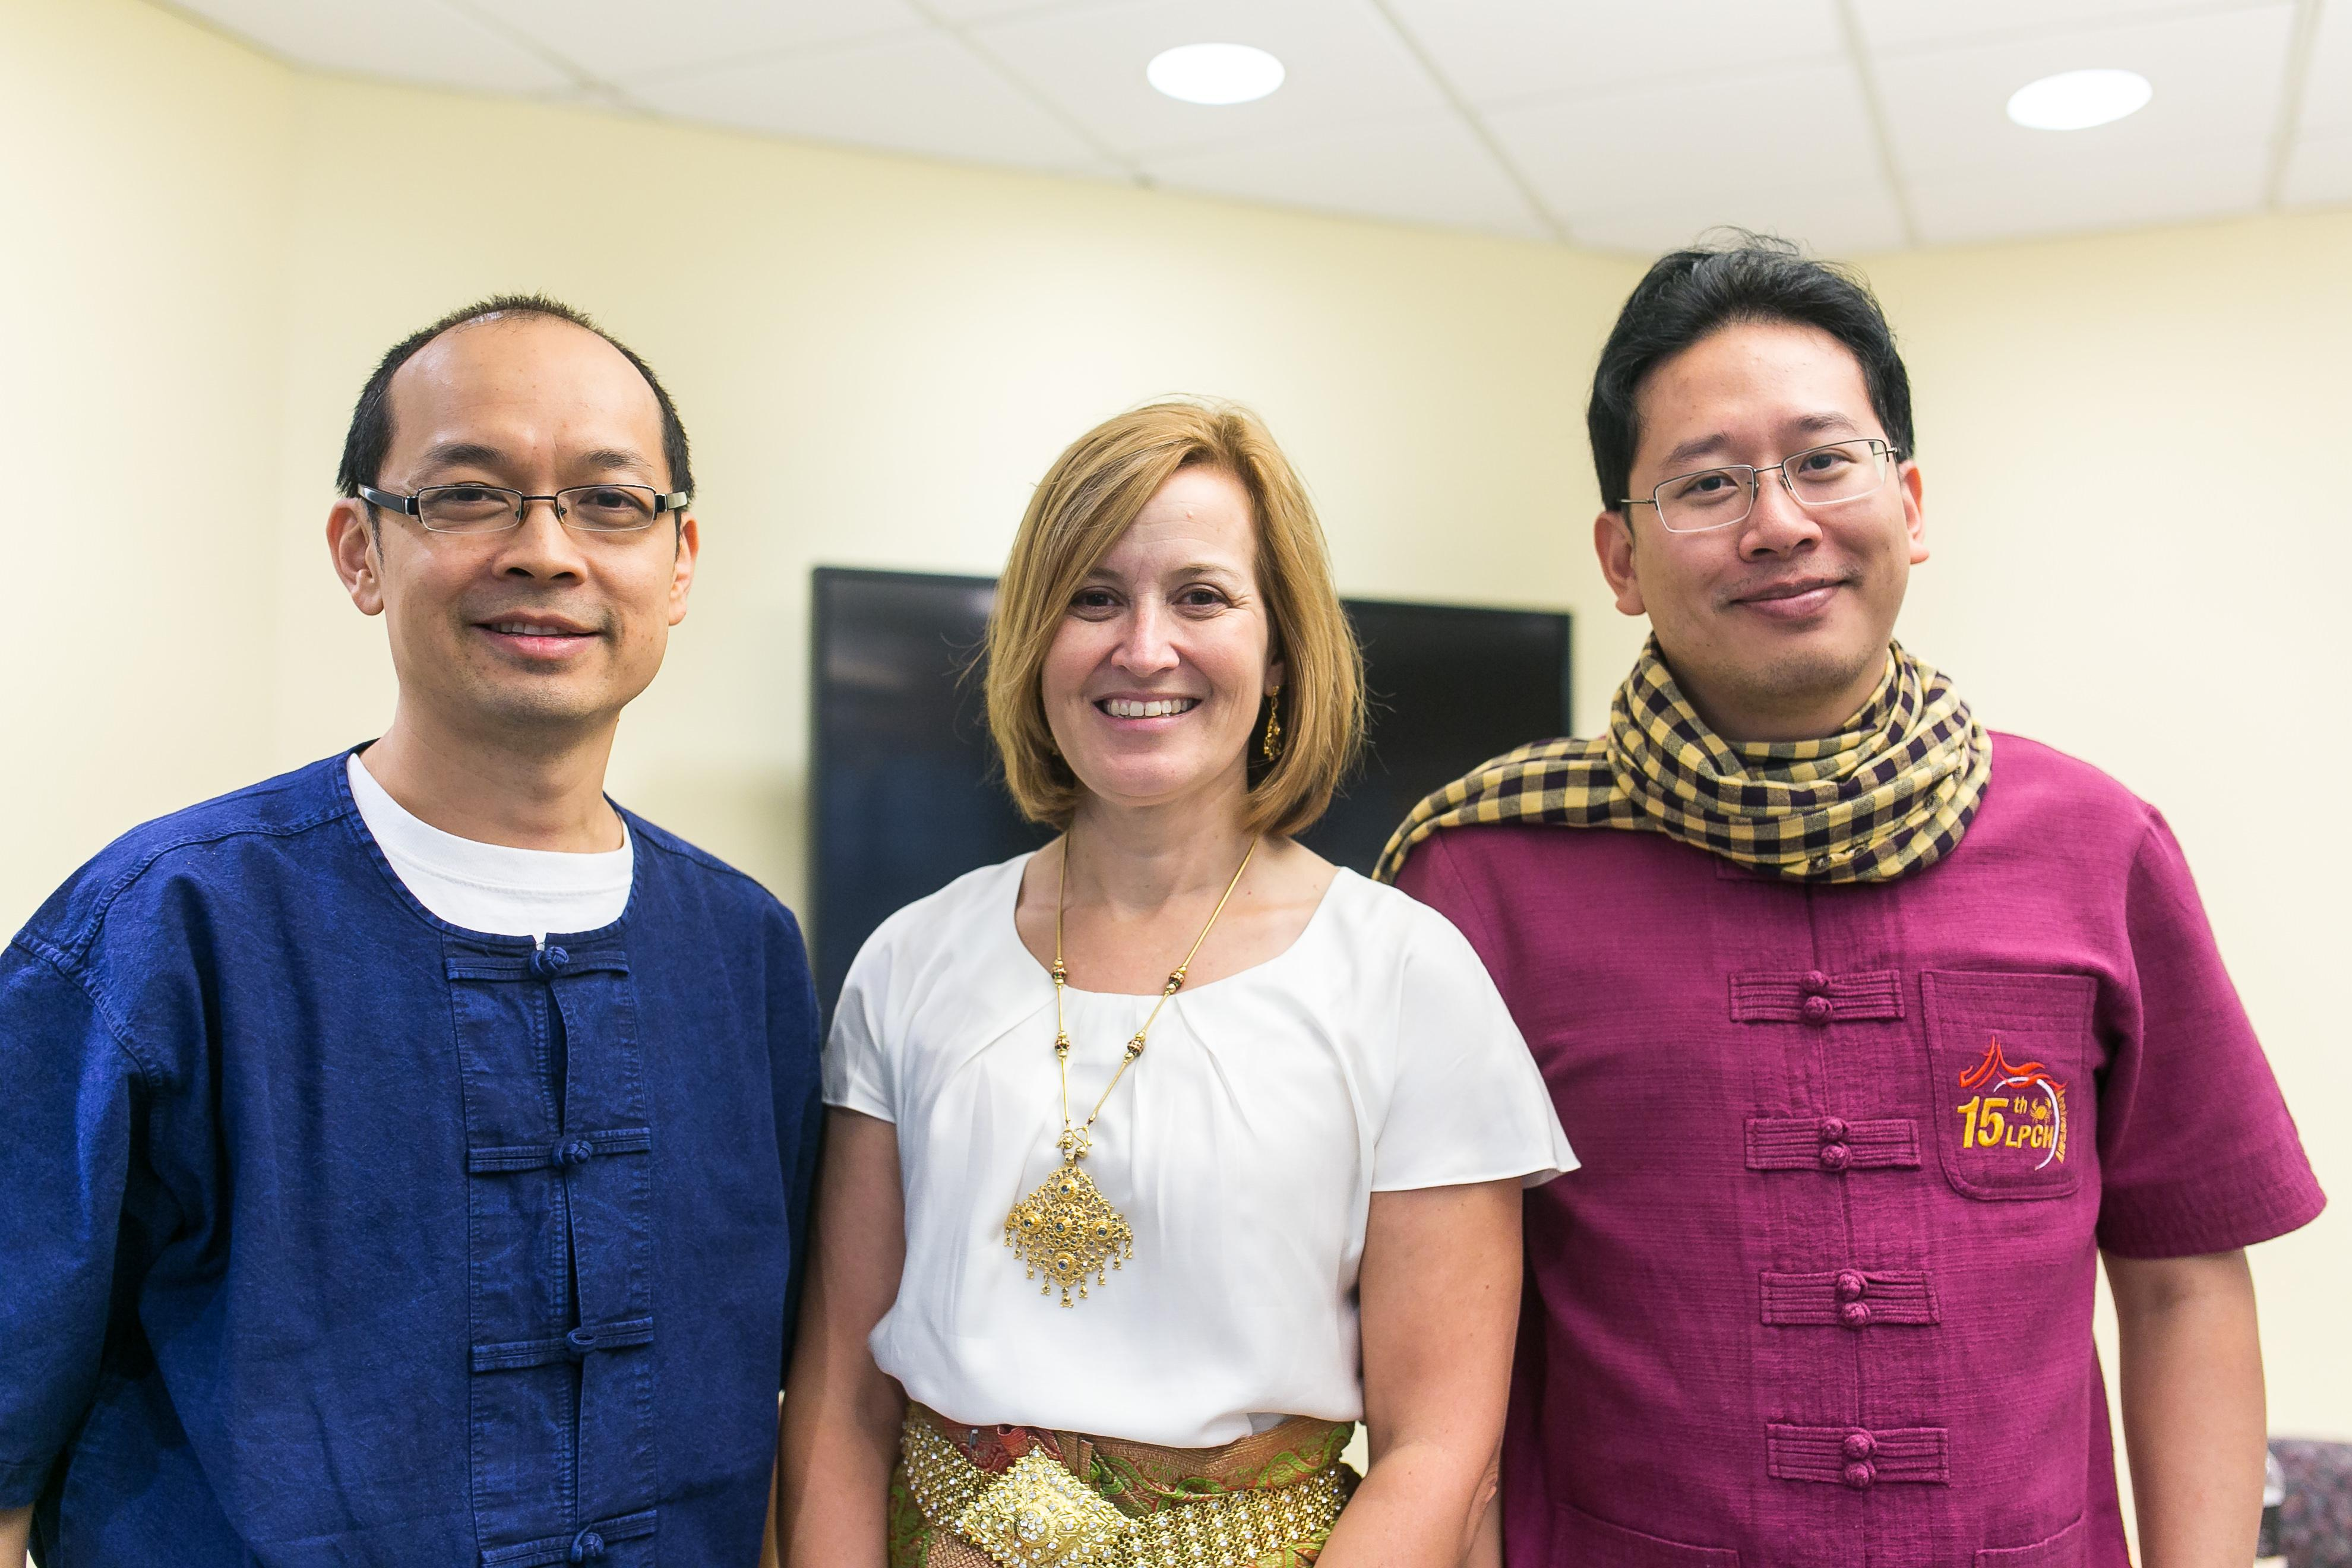 Laura Rozek with Dr. Patravoot Vatanasapt (left) from Khon Kaen University and Dr. Donsuk Pongnikorn (right) from Lampang Cancer Hospital in Thailand. Dr. Vatanasapt and Dr. Pongnikorn were invited speakers for the UM-Thai Symposium on Cancer and NCDs in August 2016.